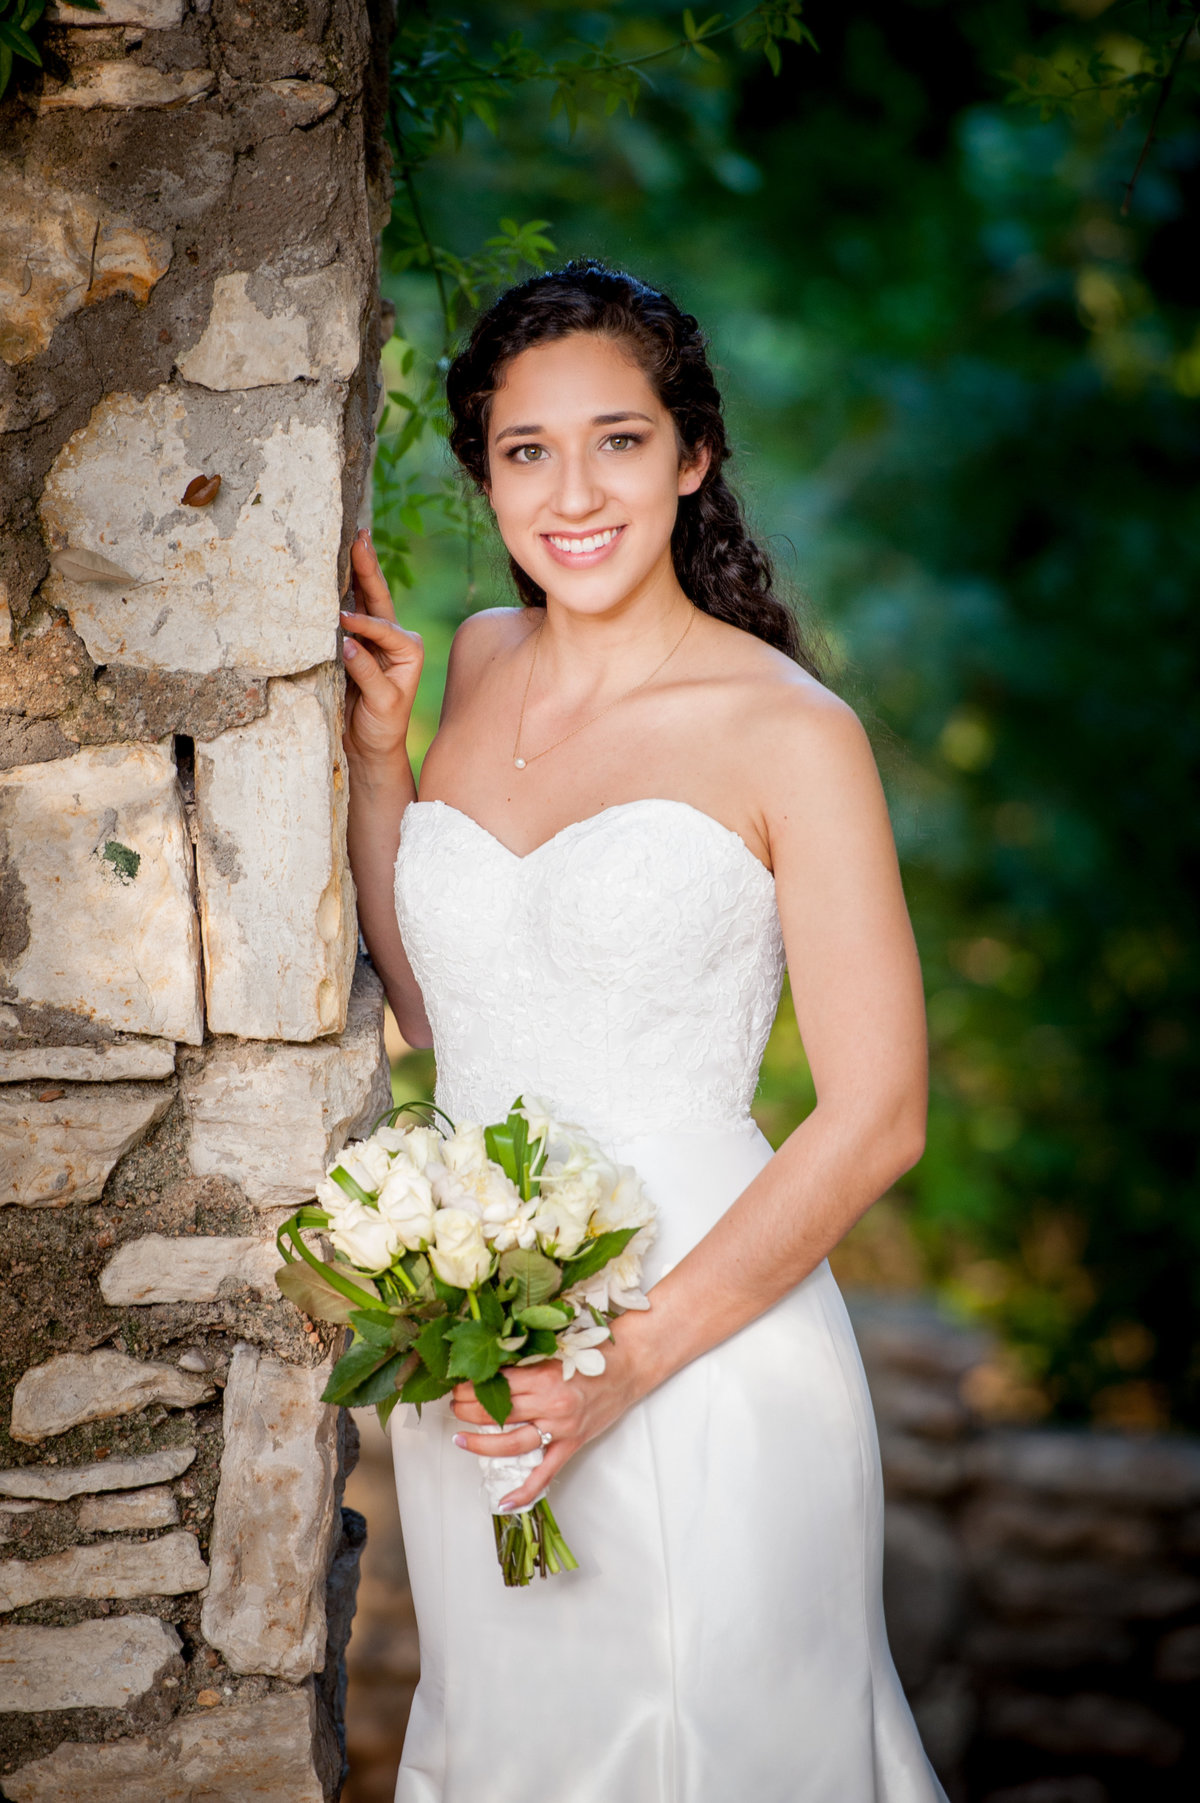 061315gabrielle_bridal_session_mayfield_park_0018